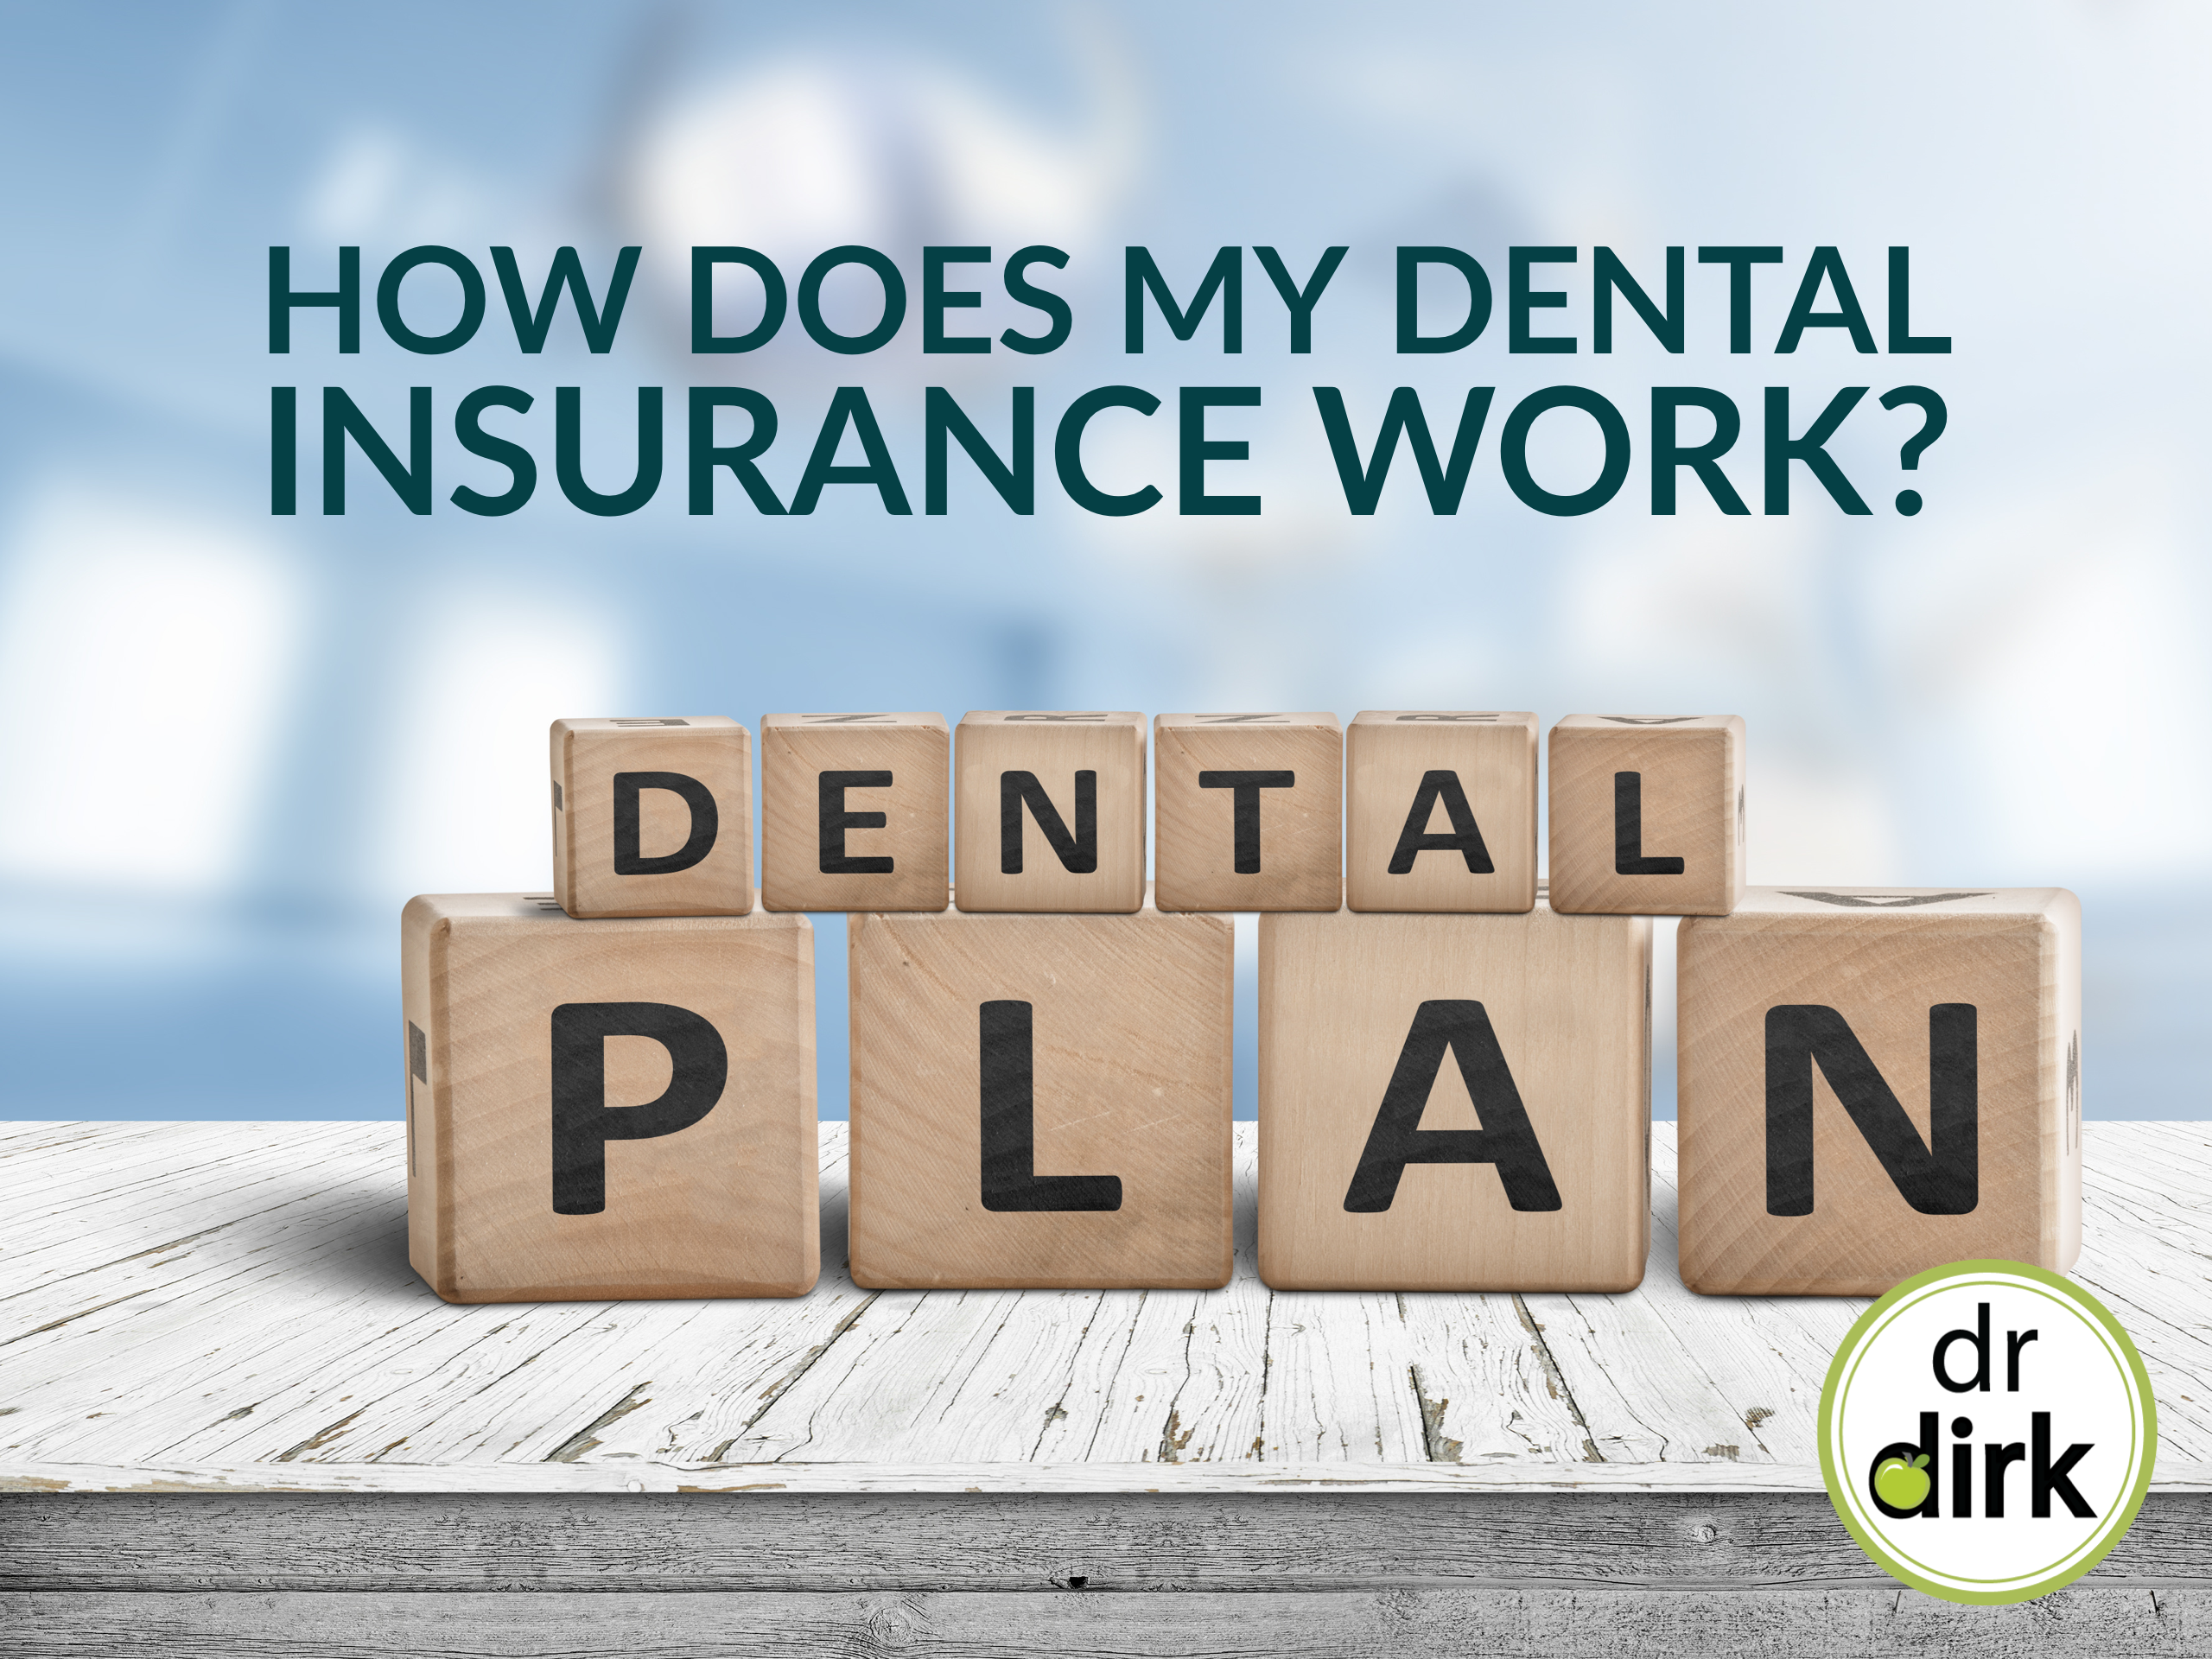 How Does My Dental Insurance Work?